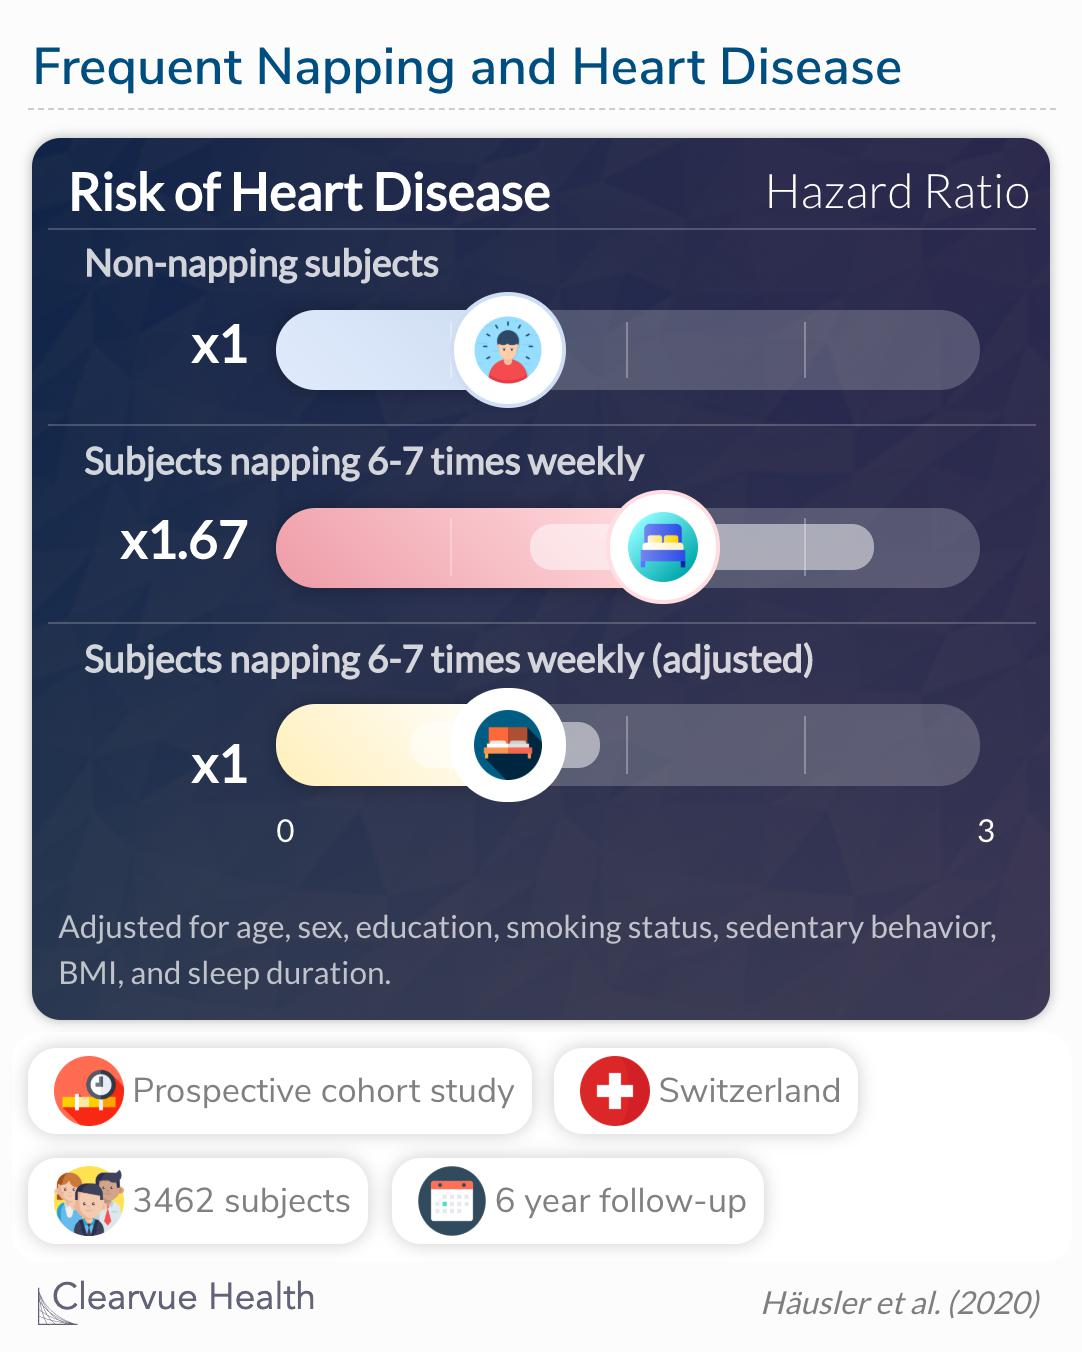 The risk of heart disease was insignificant in subjects napping 6-7 times weekly.